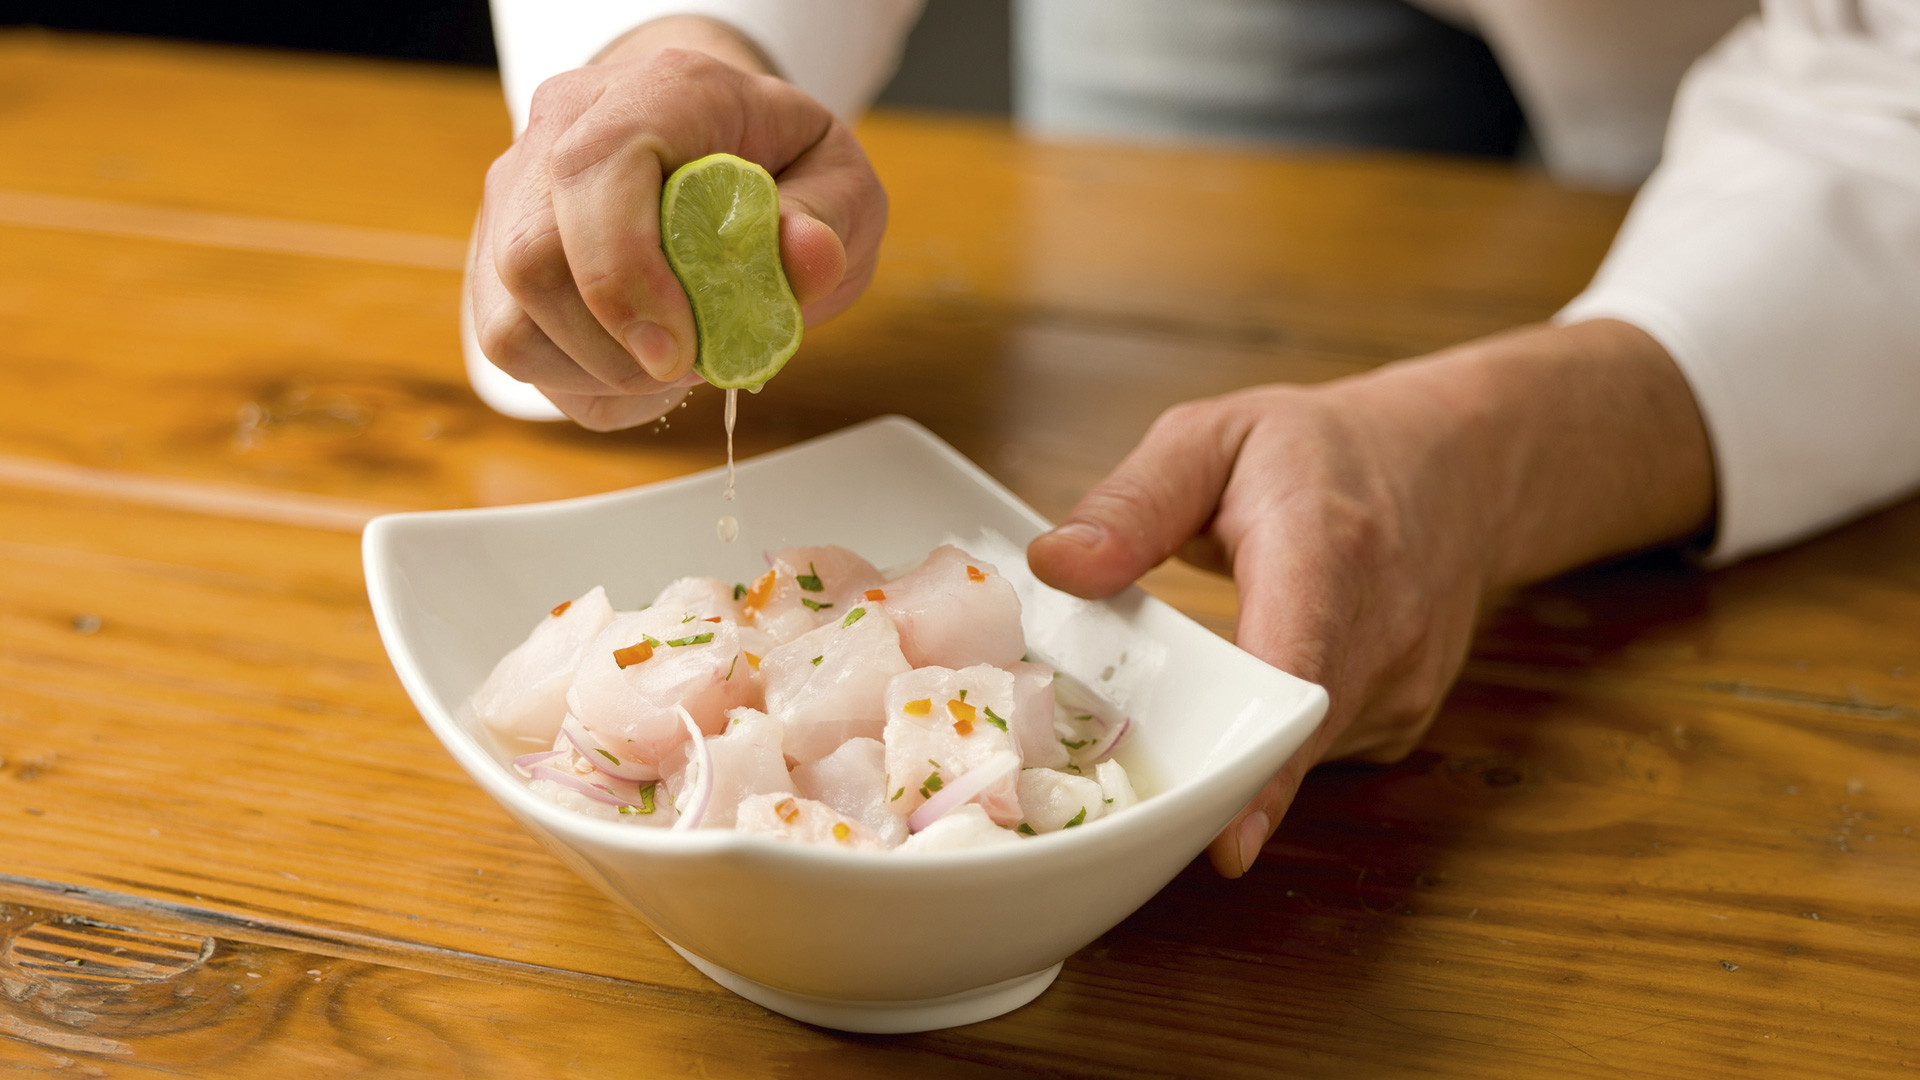 Ceviche, one of Peru's most famous dishes